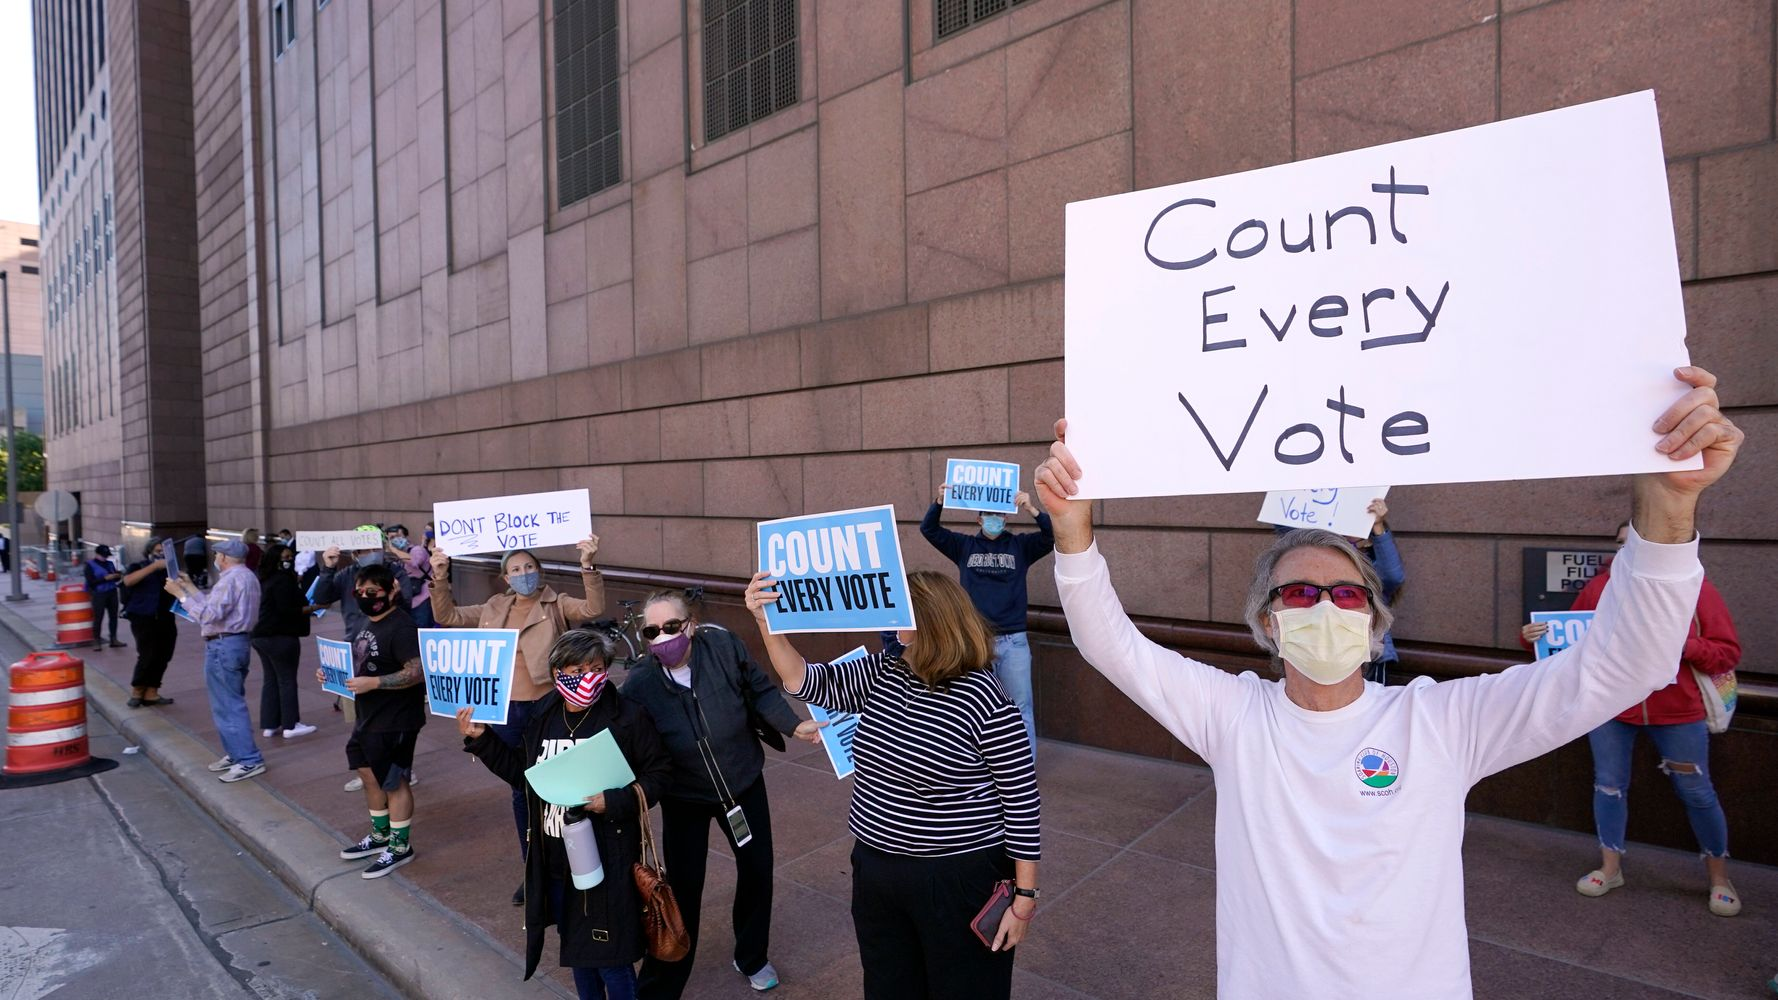 Federal Judge Rejects Republican Bid To Toss Out 127,000 Ballots In Texas